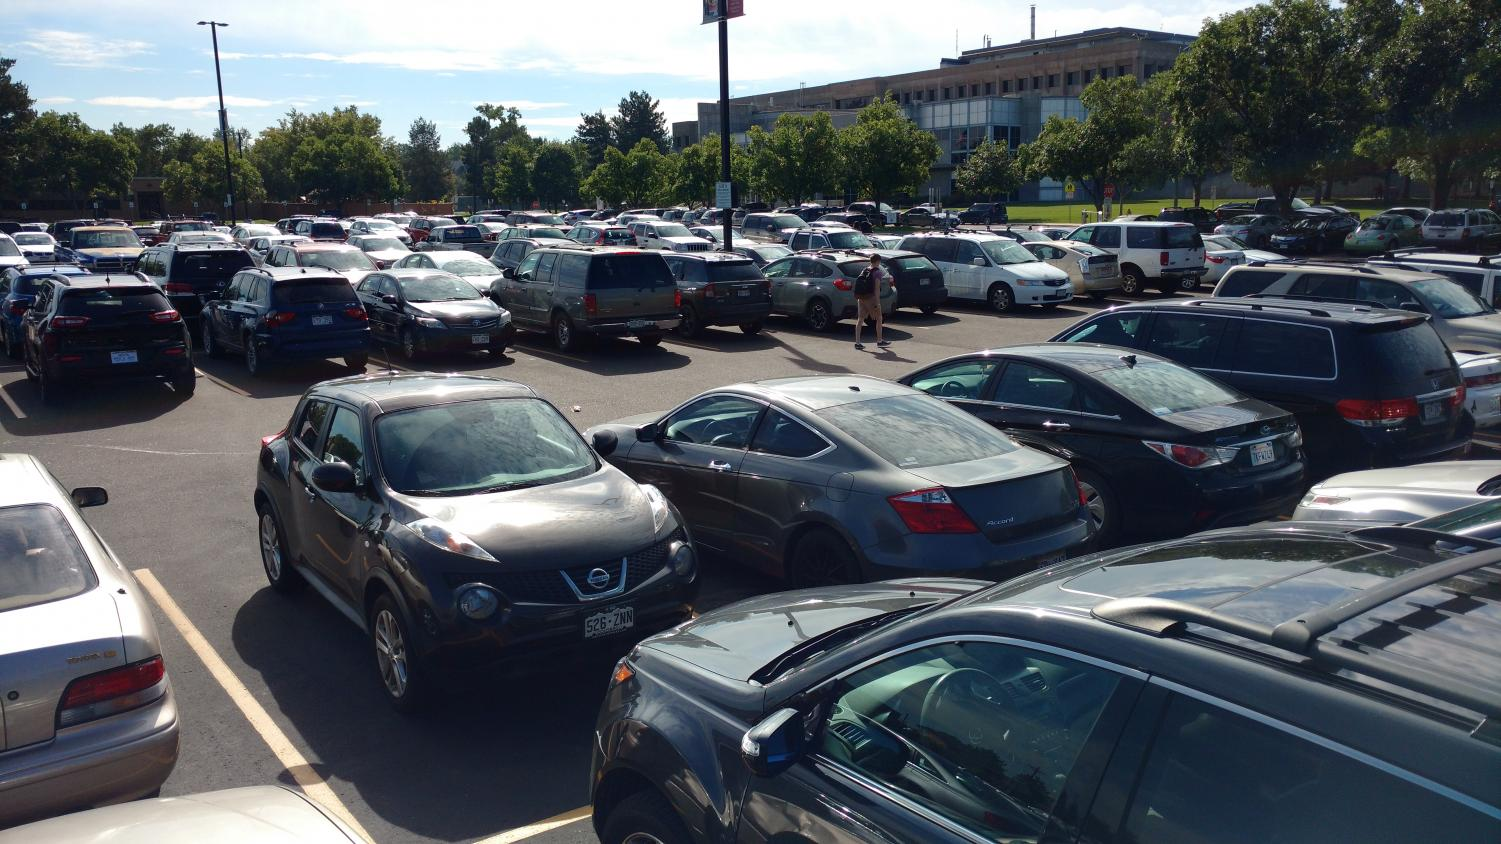 ACC's Parking Lot A  completely full at 10:00 am